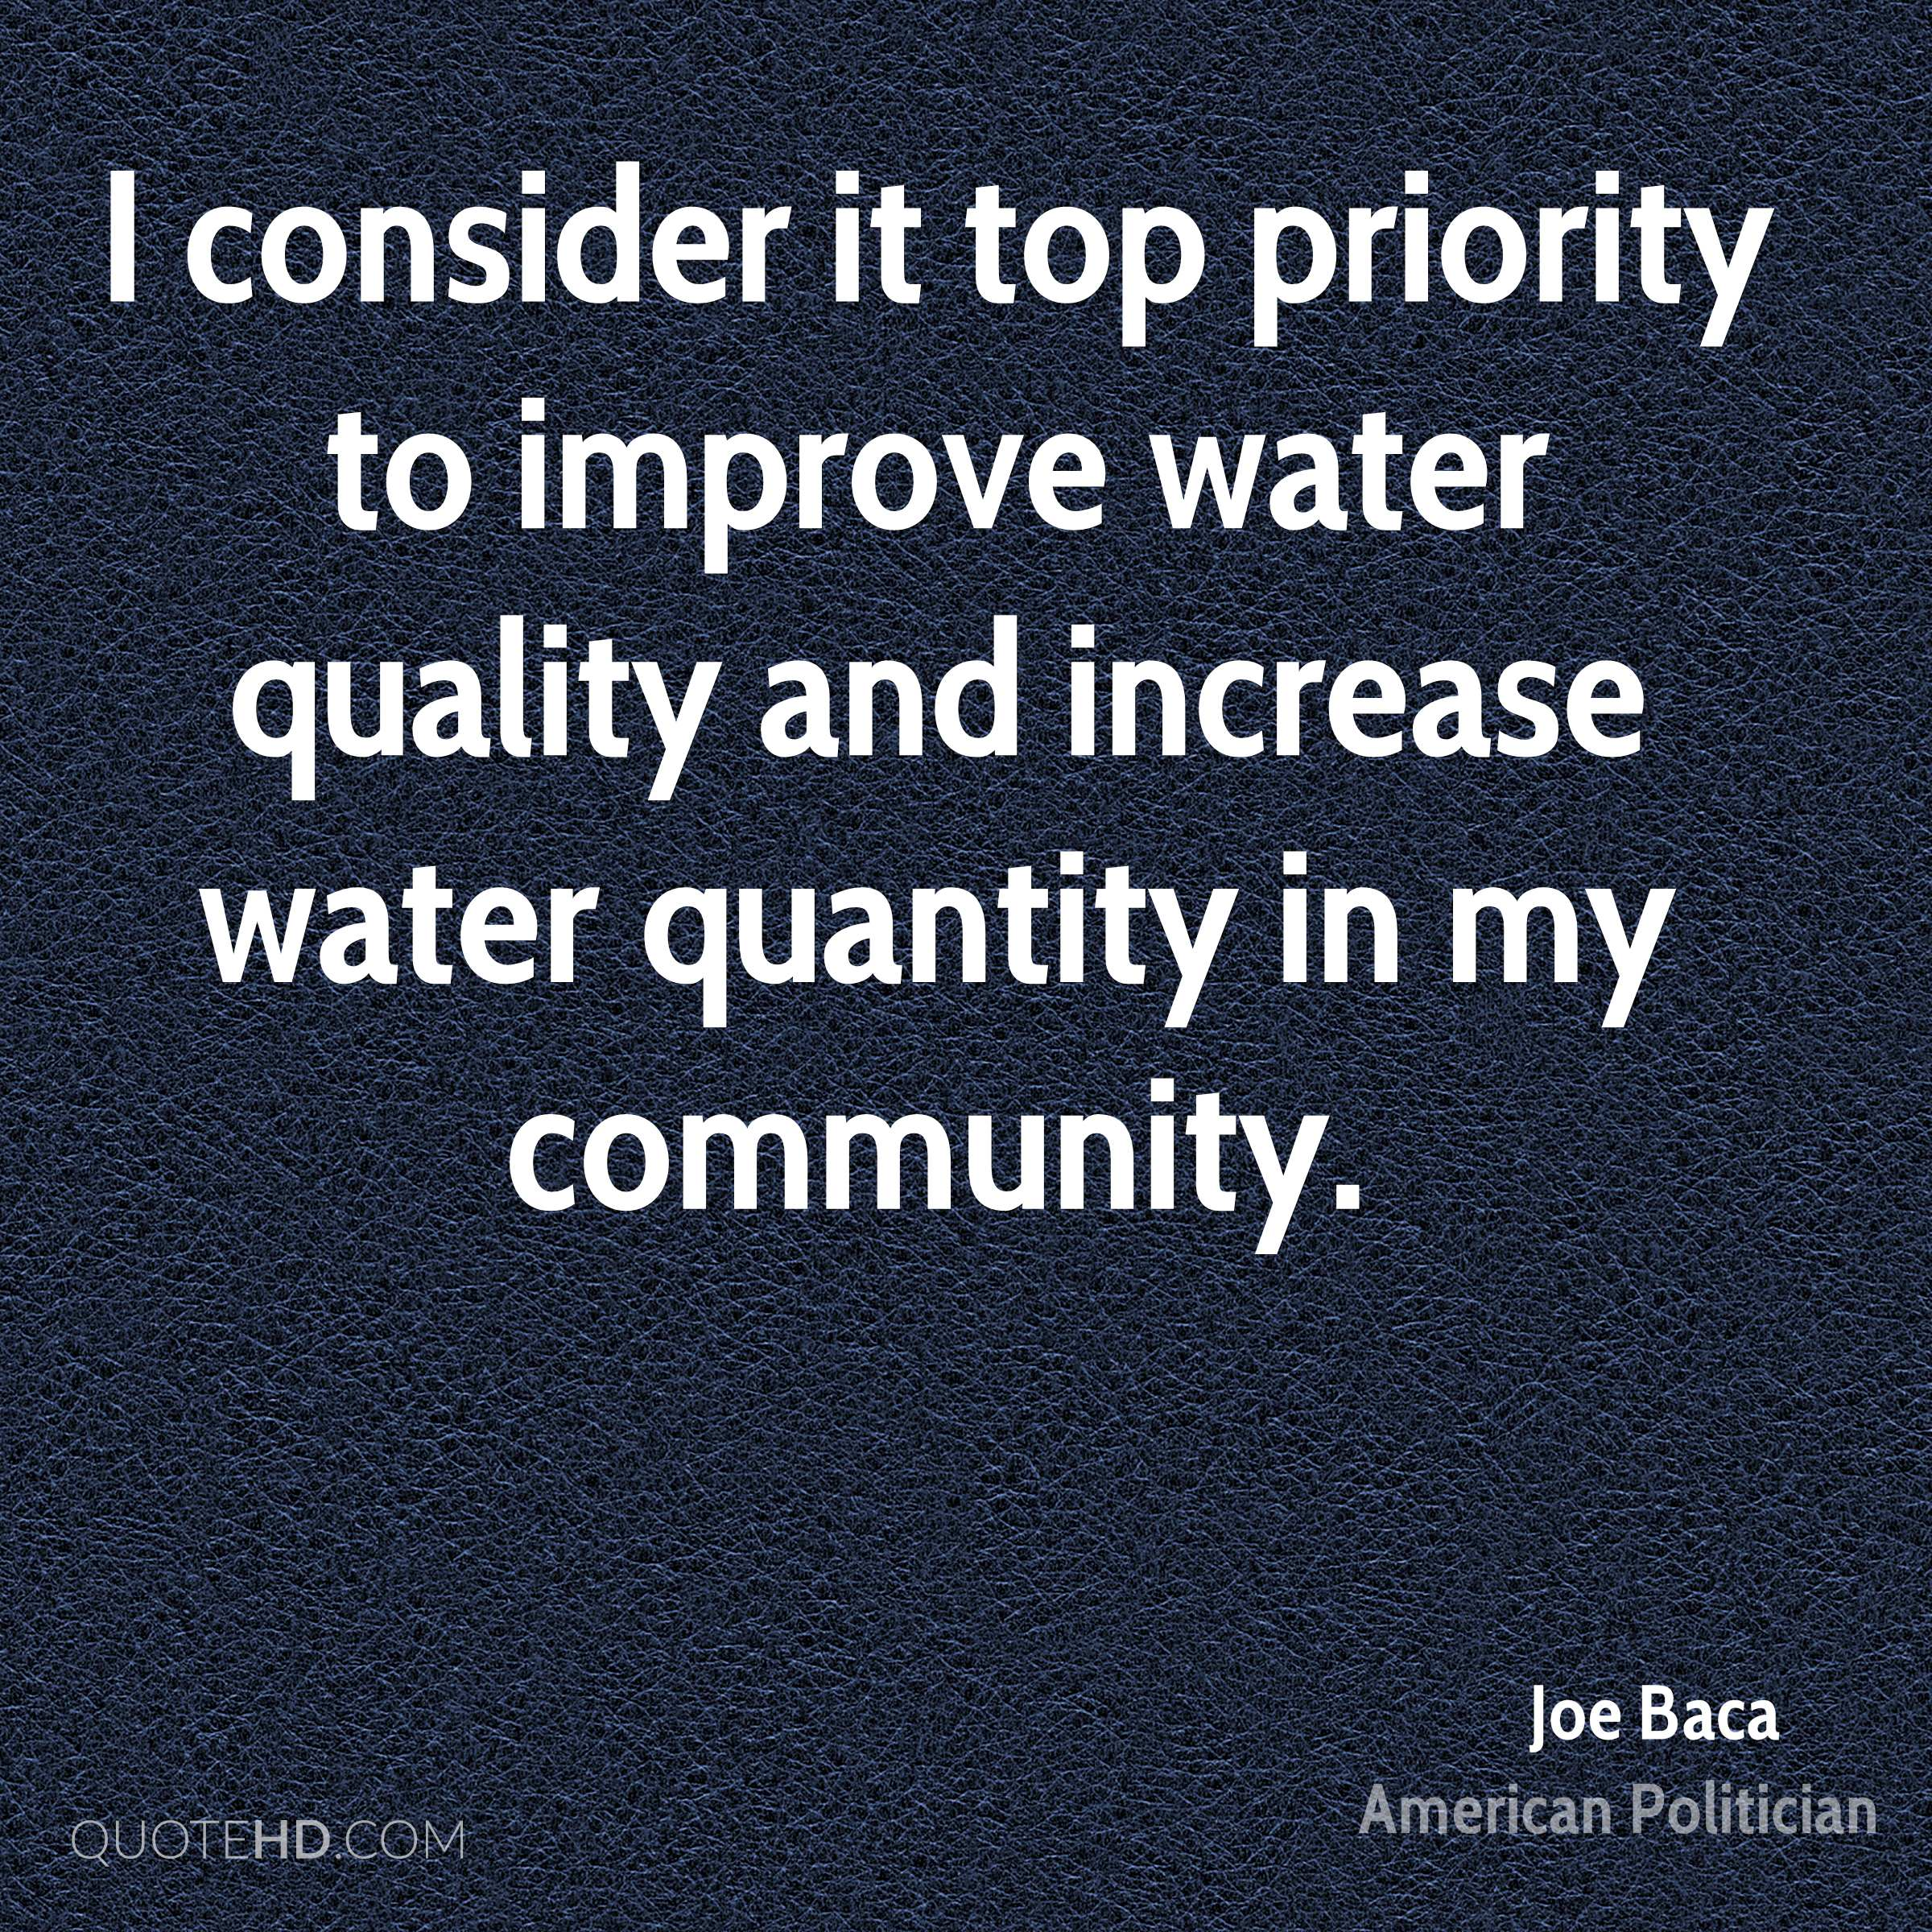 Quotes About Water Joe Baca Quotes  Quotehd